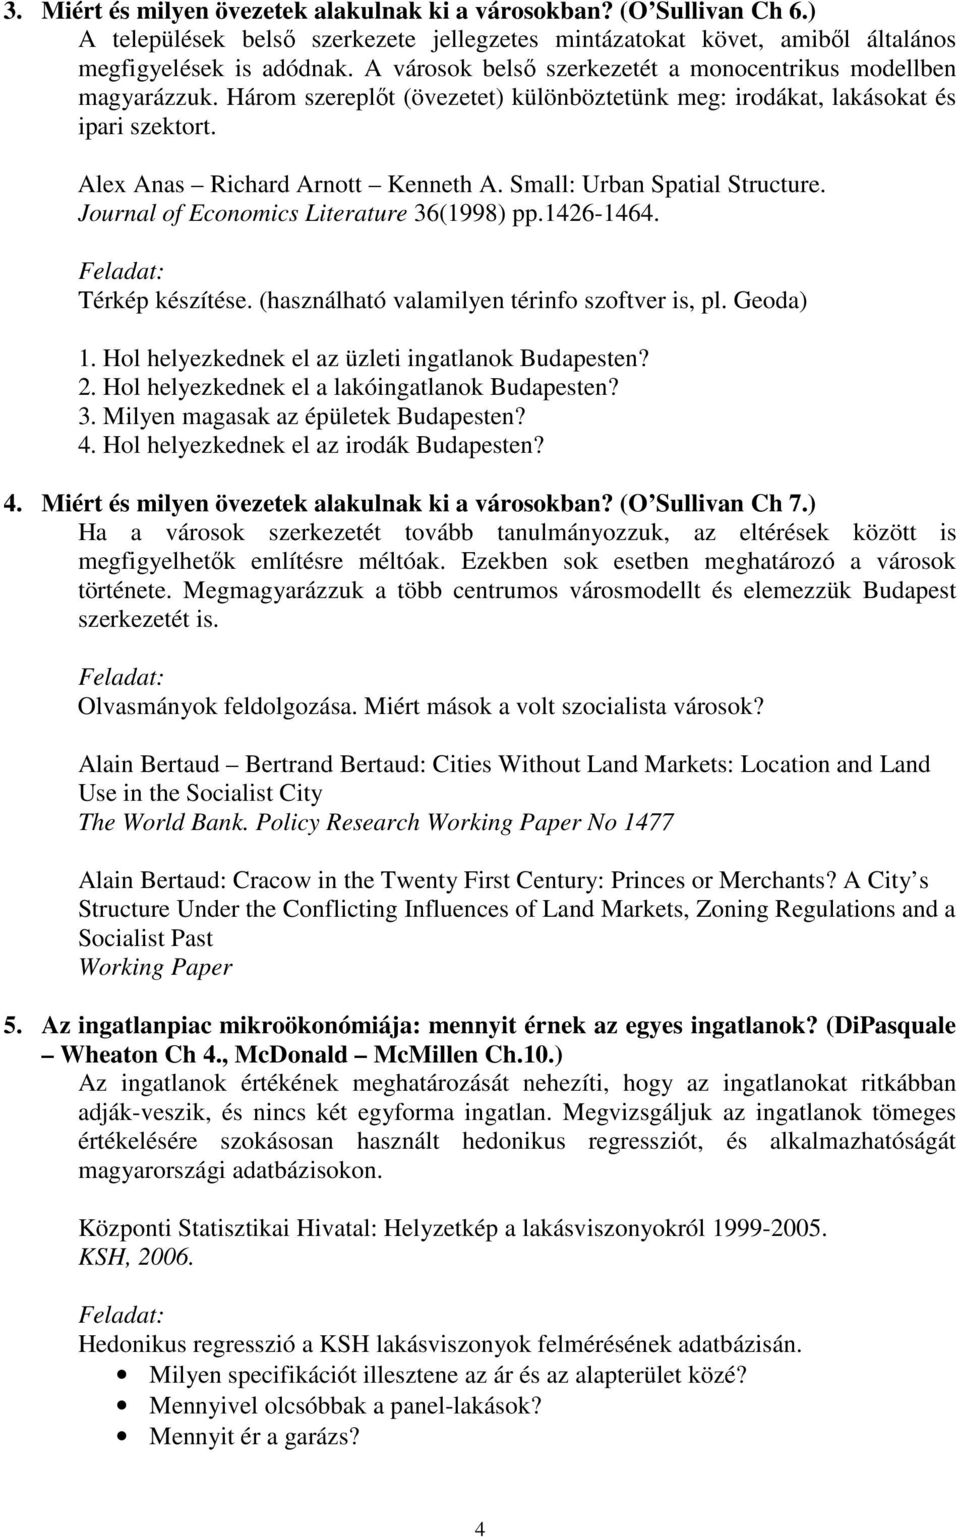 Small: Urban Spatial Structure. Journal of Economics Literature 36(1998) pp.1426-1464. Térkép készítése. (használható valamilyen térinfo szoftver is, pl. Geoda) 1.